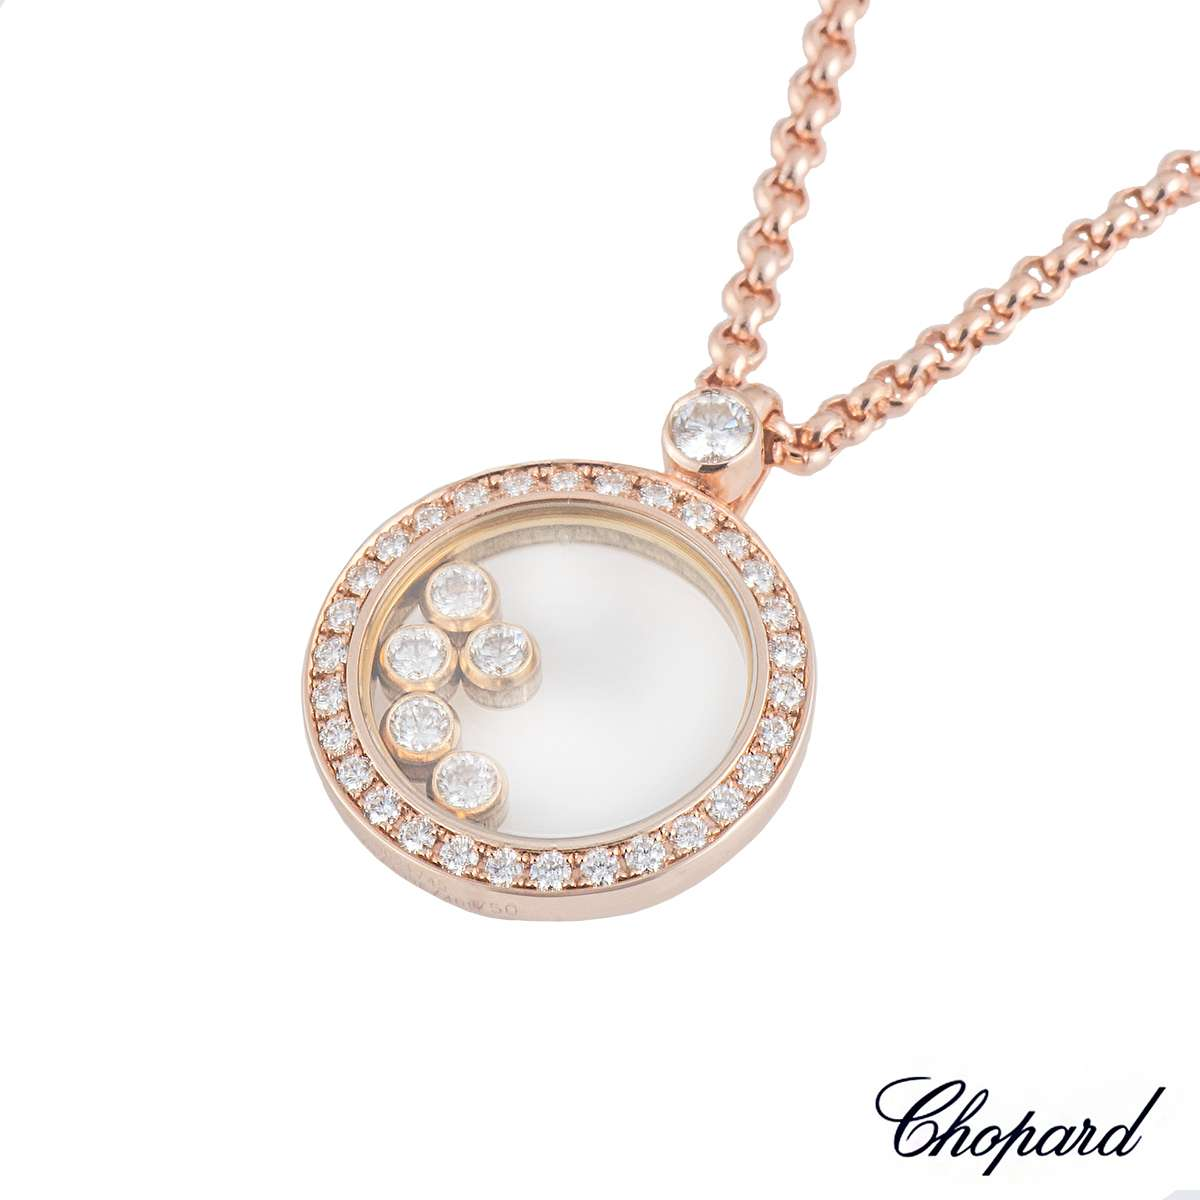 Chopard happy diamonds rose gold pendant rich diamonds of bond street chopard happy diamonds rose gold pendant aloadofball